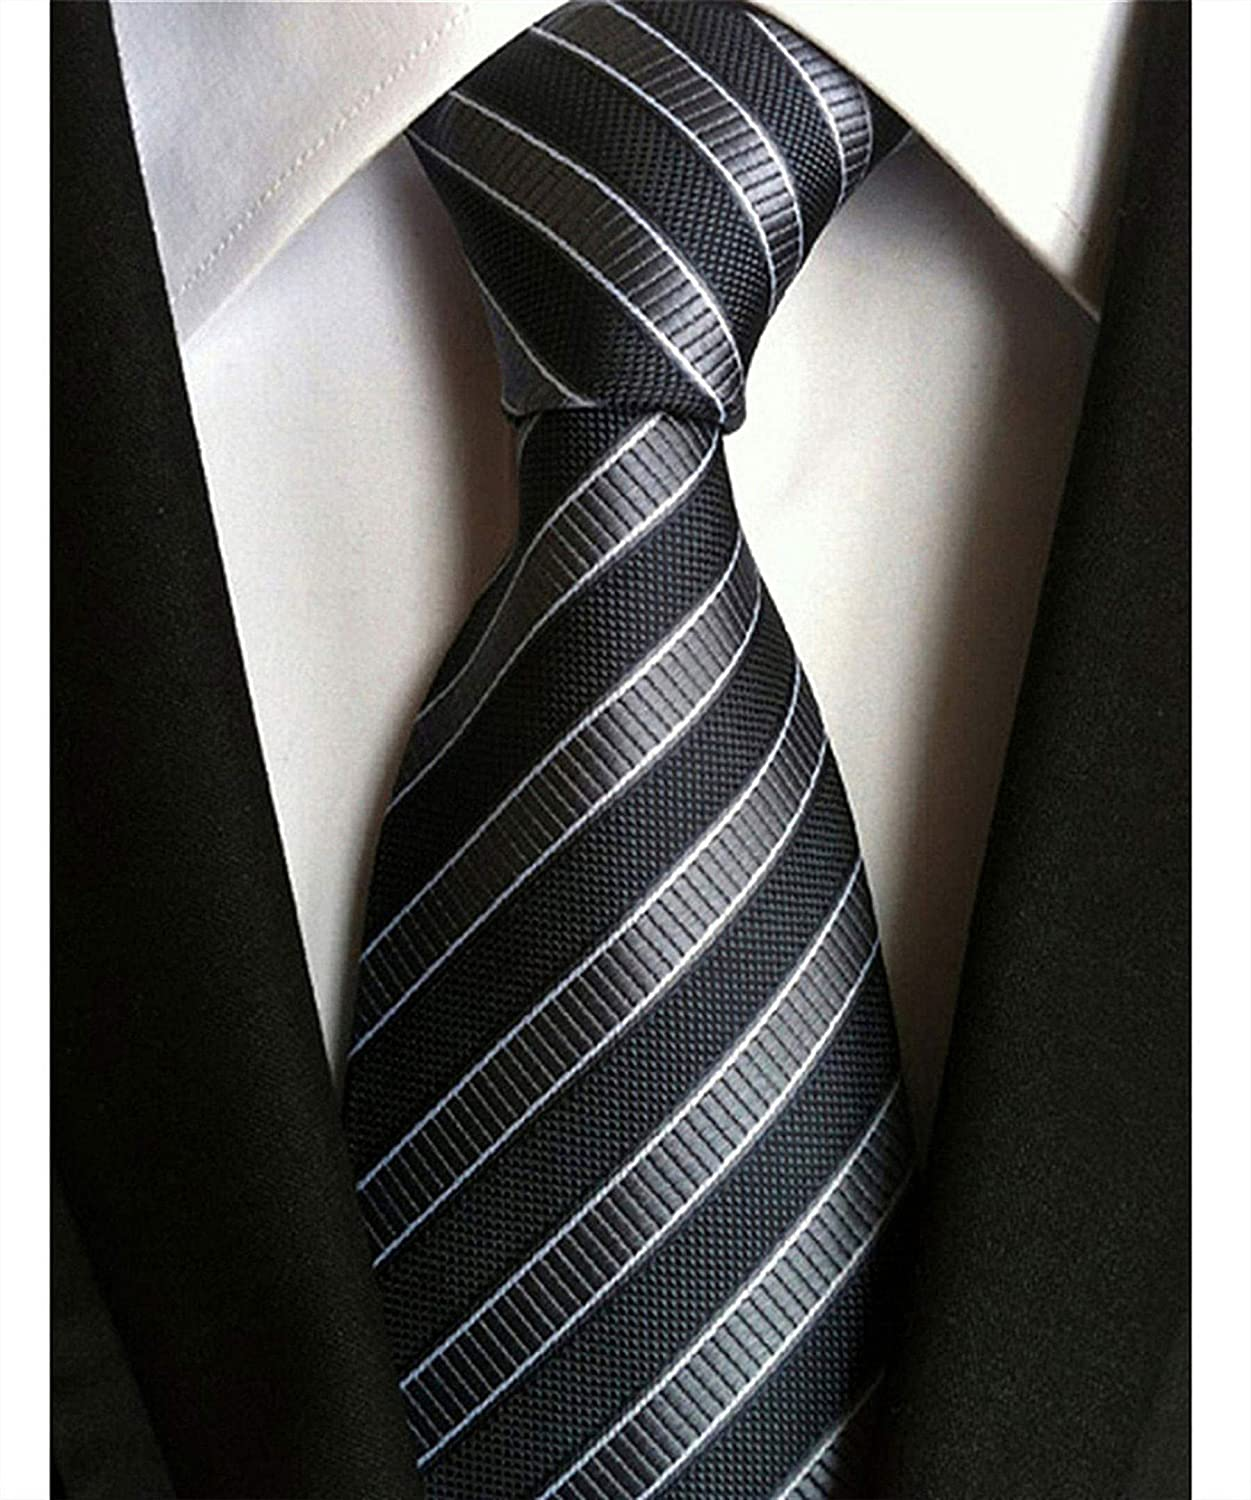 New Classic Checks Black White JACQUARD WOVEN 100/% Silk Men/'s Tie Necktie